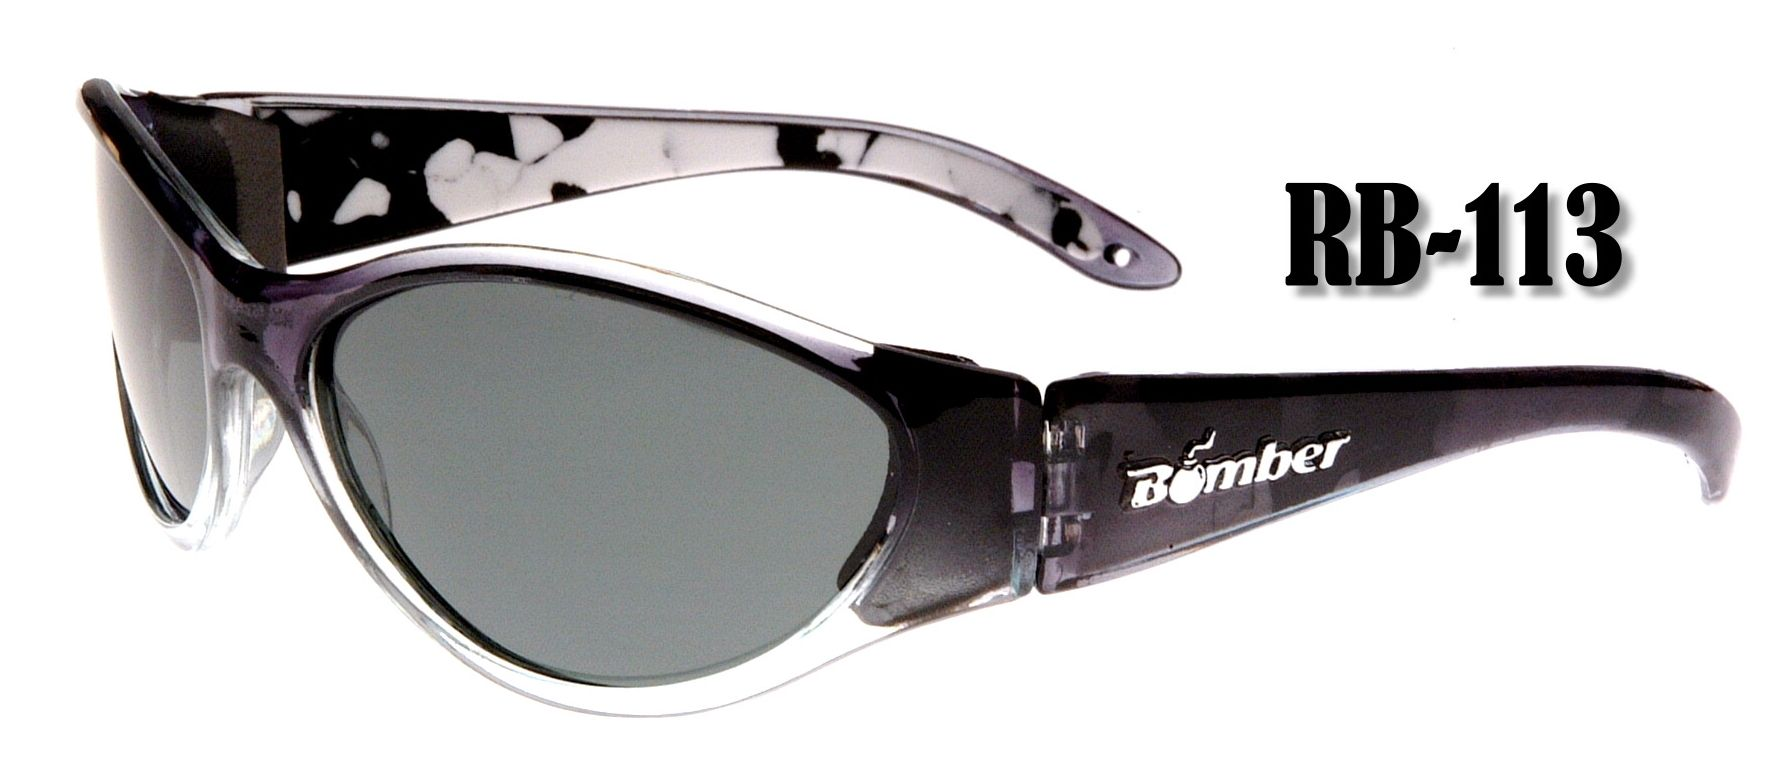 2915359b73 Bomber Floating Polarized Sunglasses These look cool